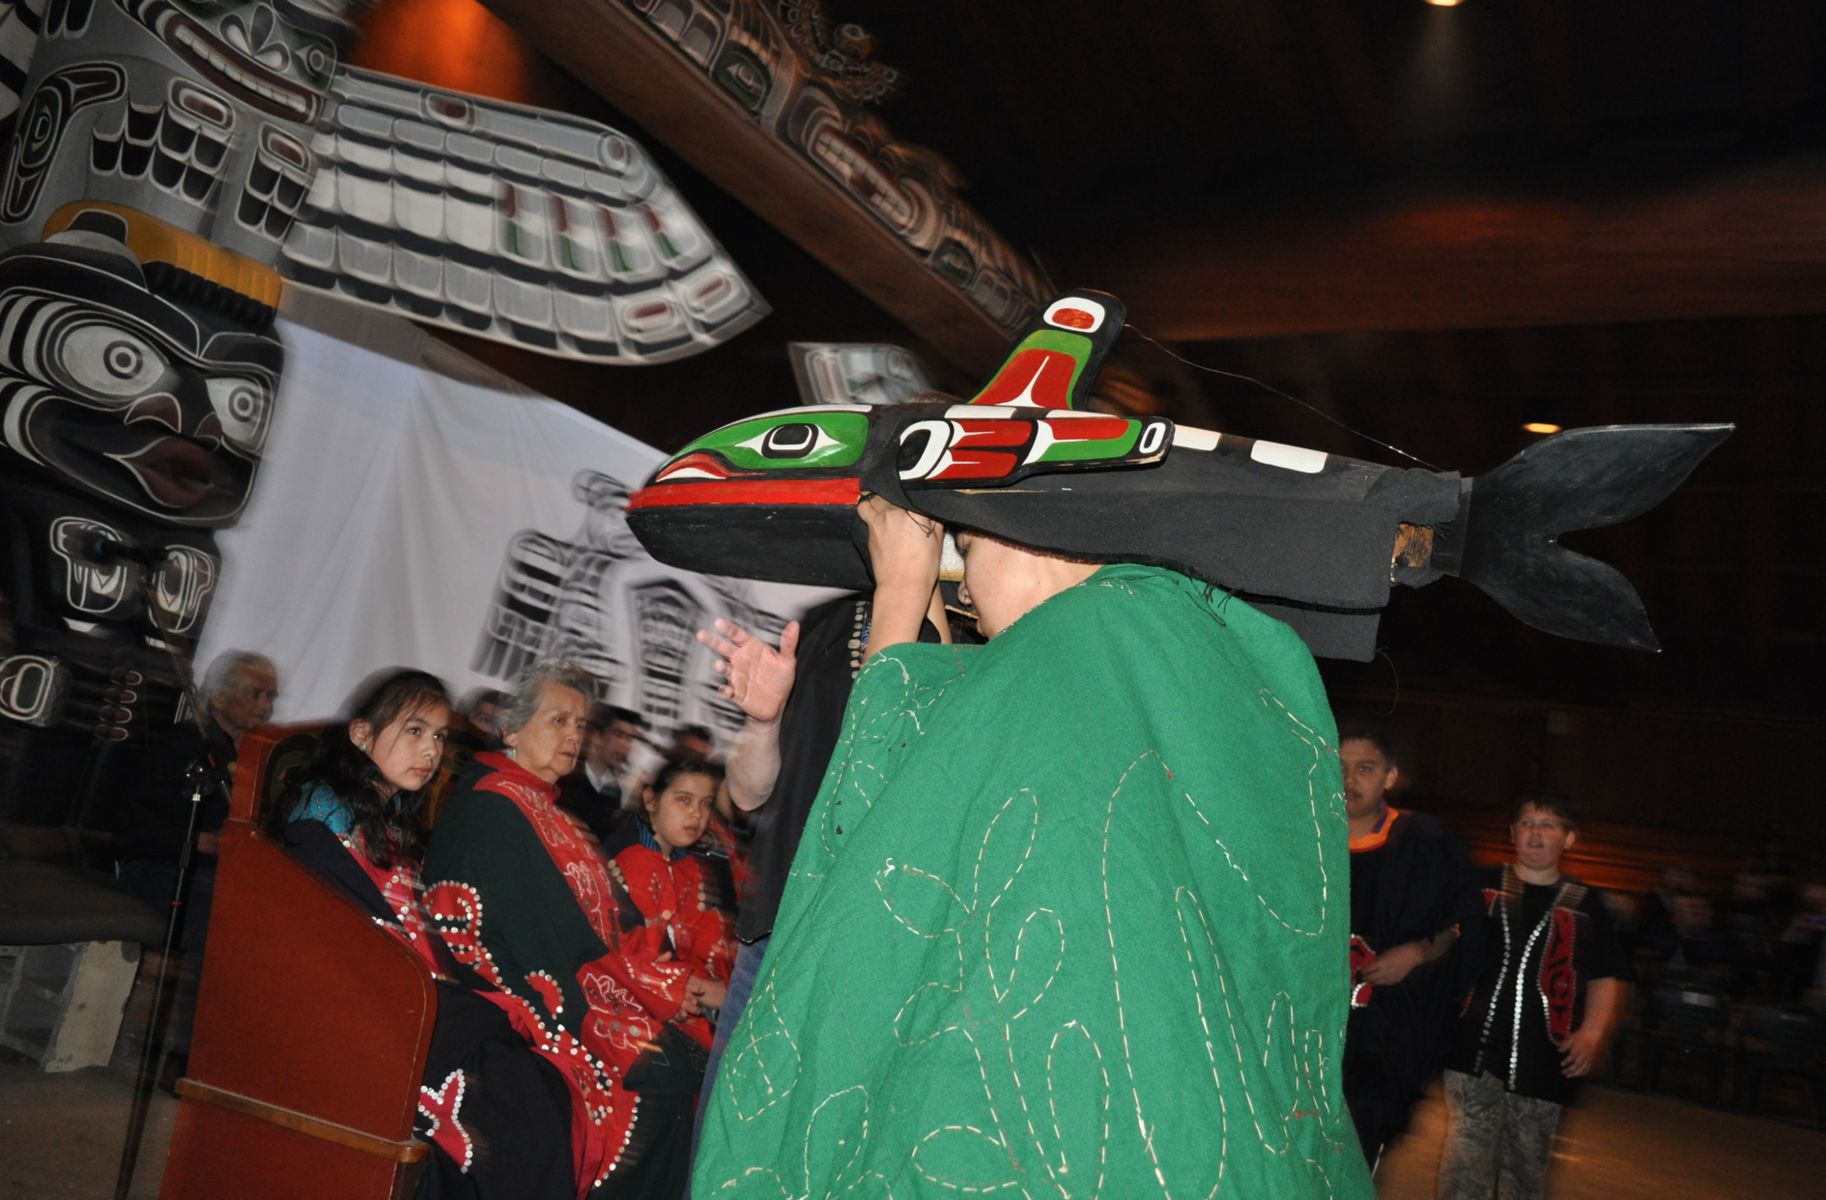 Man wearing a headdress addresses a group of people.